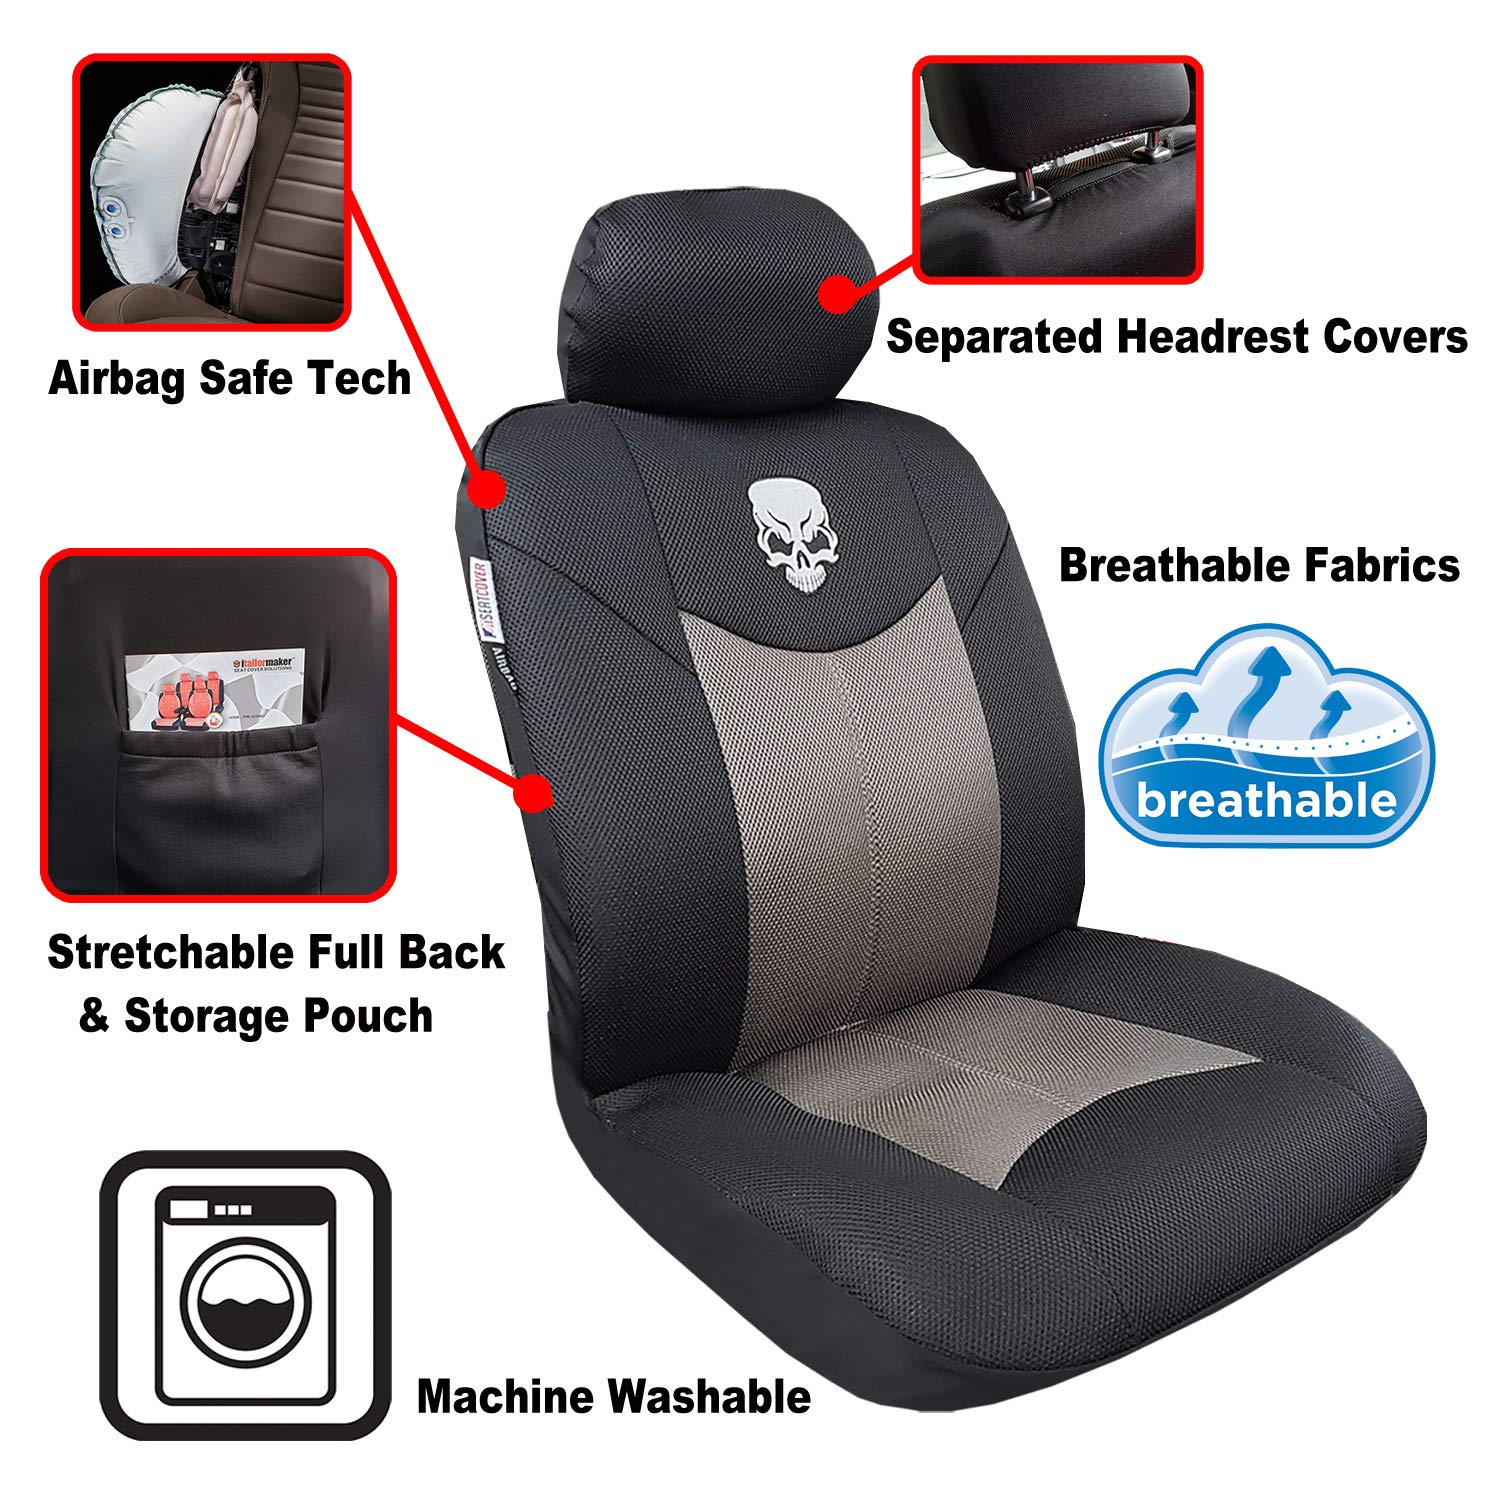 8 Color Options New Airflow Mesh Embroidery Car Seat Covers Universal Size for 4Runner Tacoma 9pcs Complete Set Warm in Winter Black02